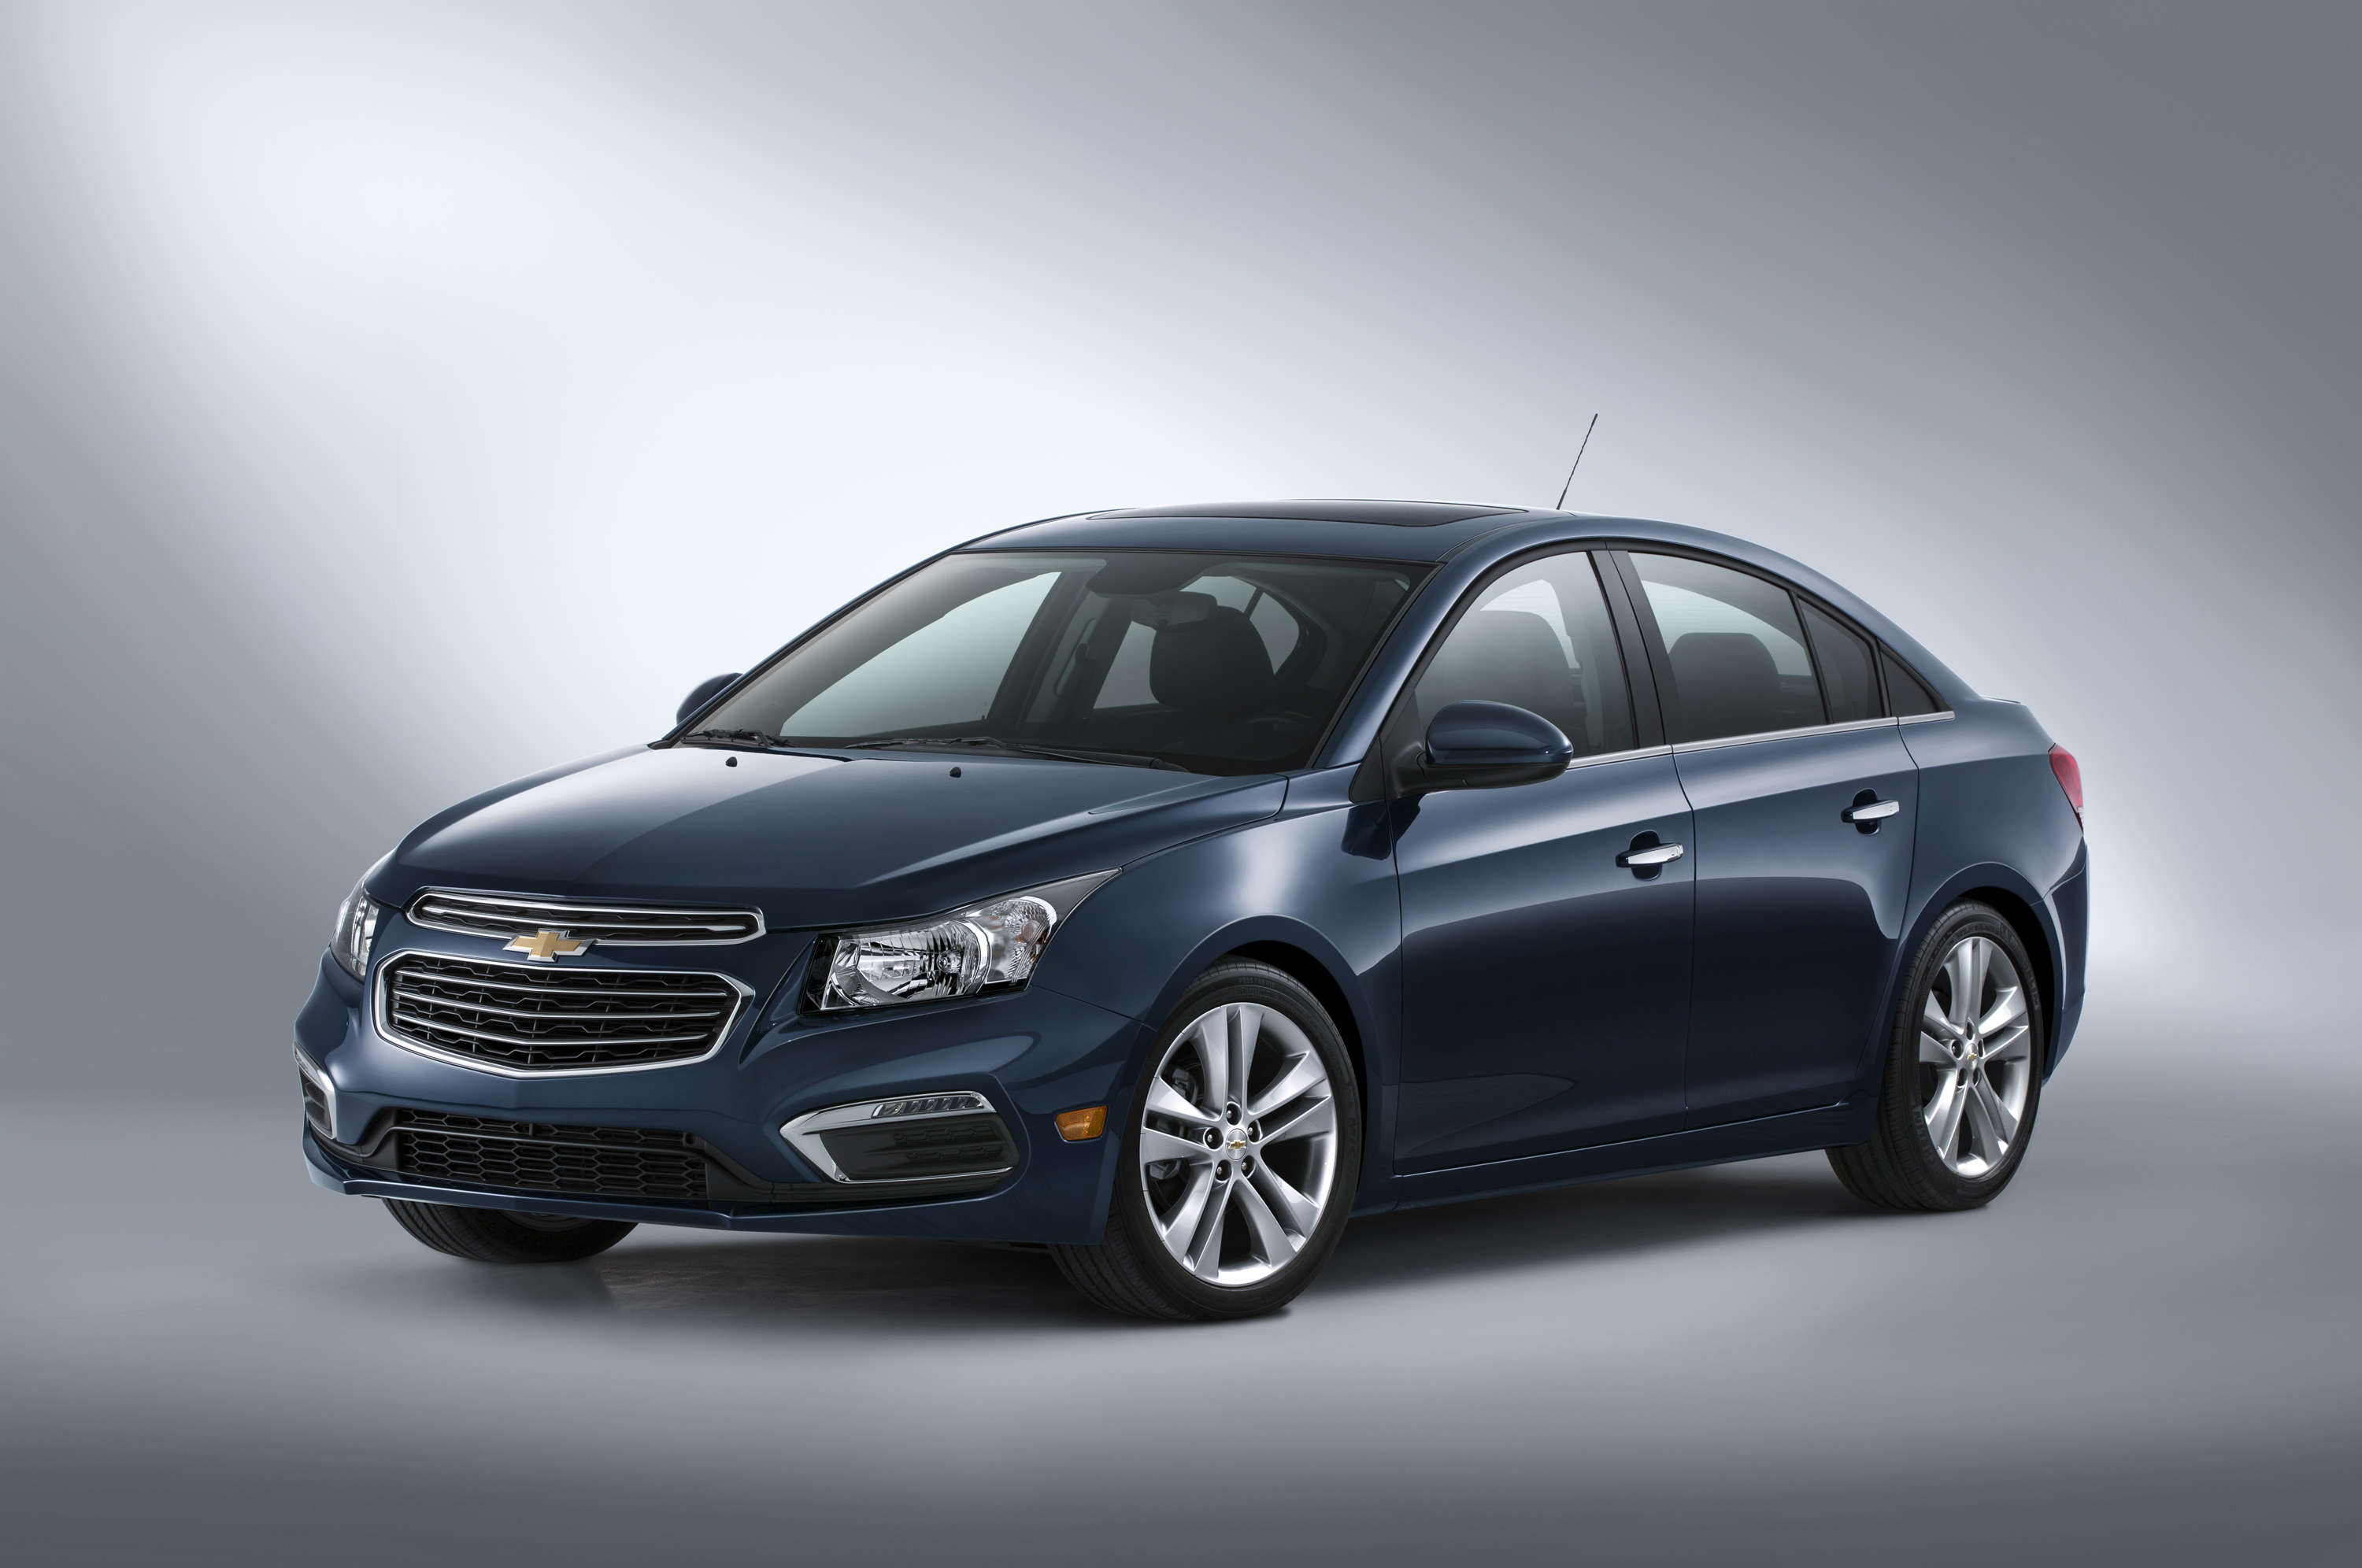 Styling Star 4G LTE Siri Updates for 2015 Chevy Cruze